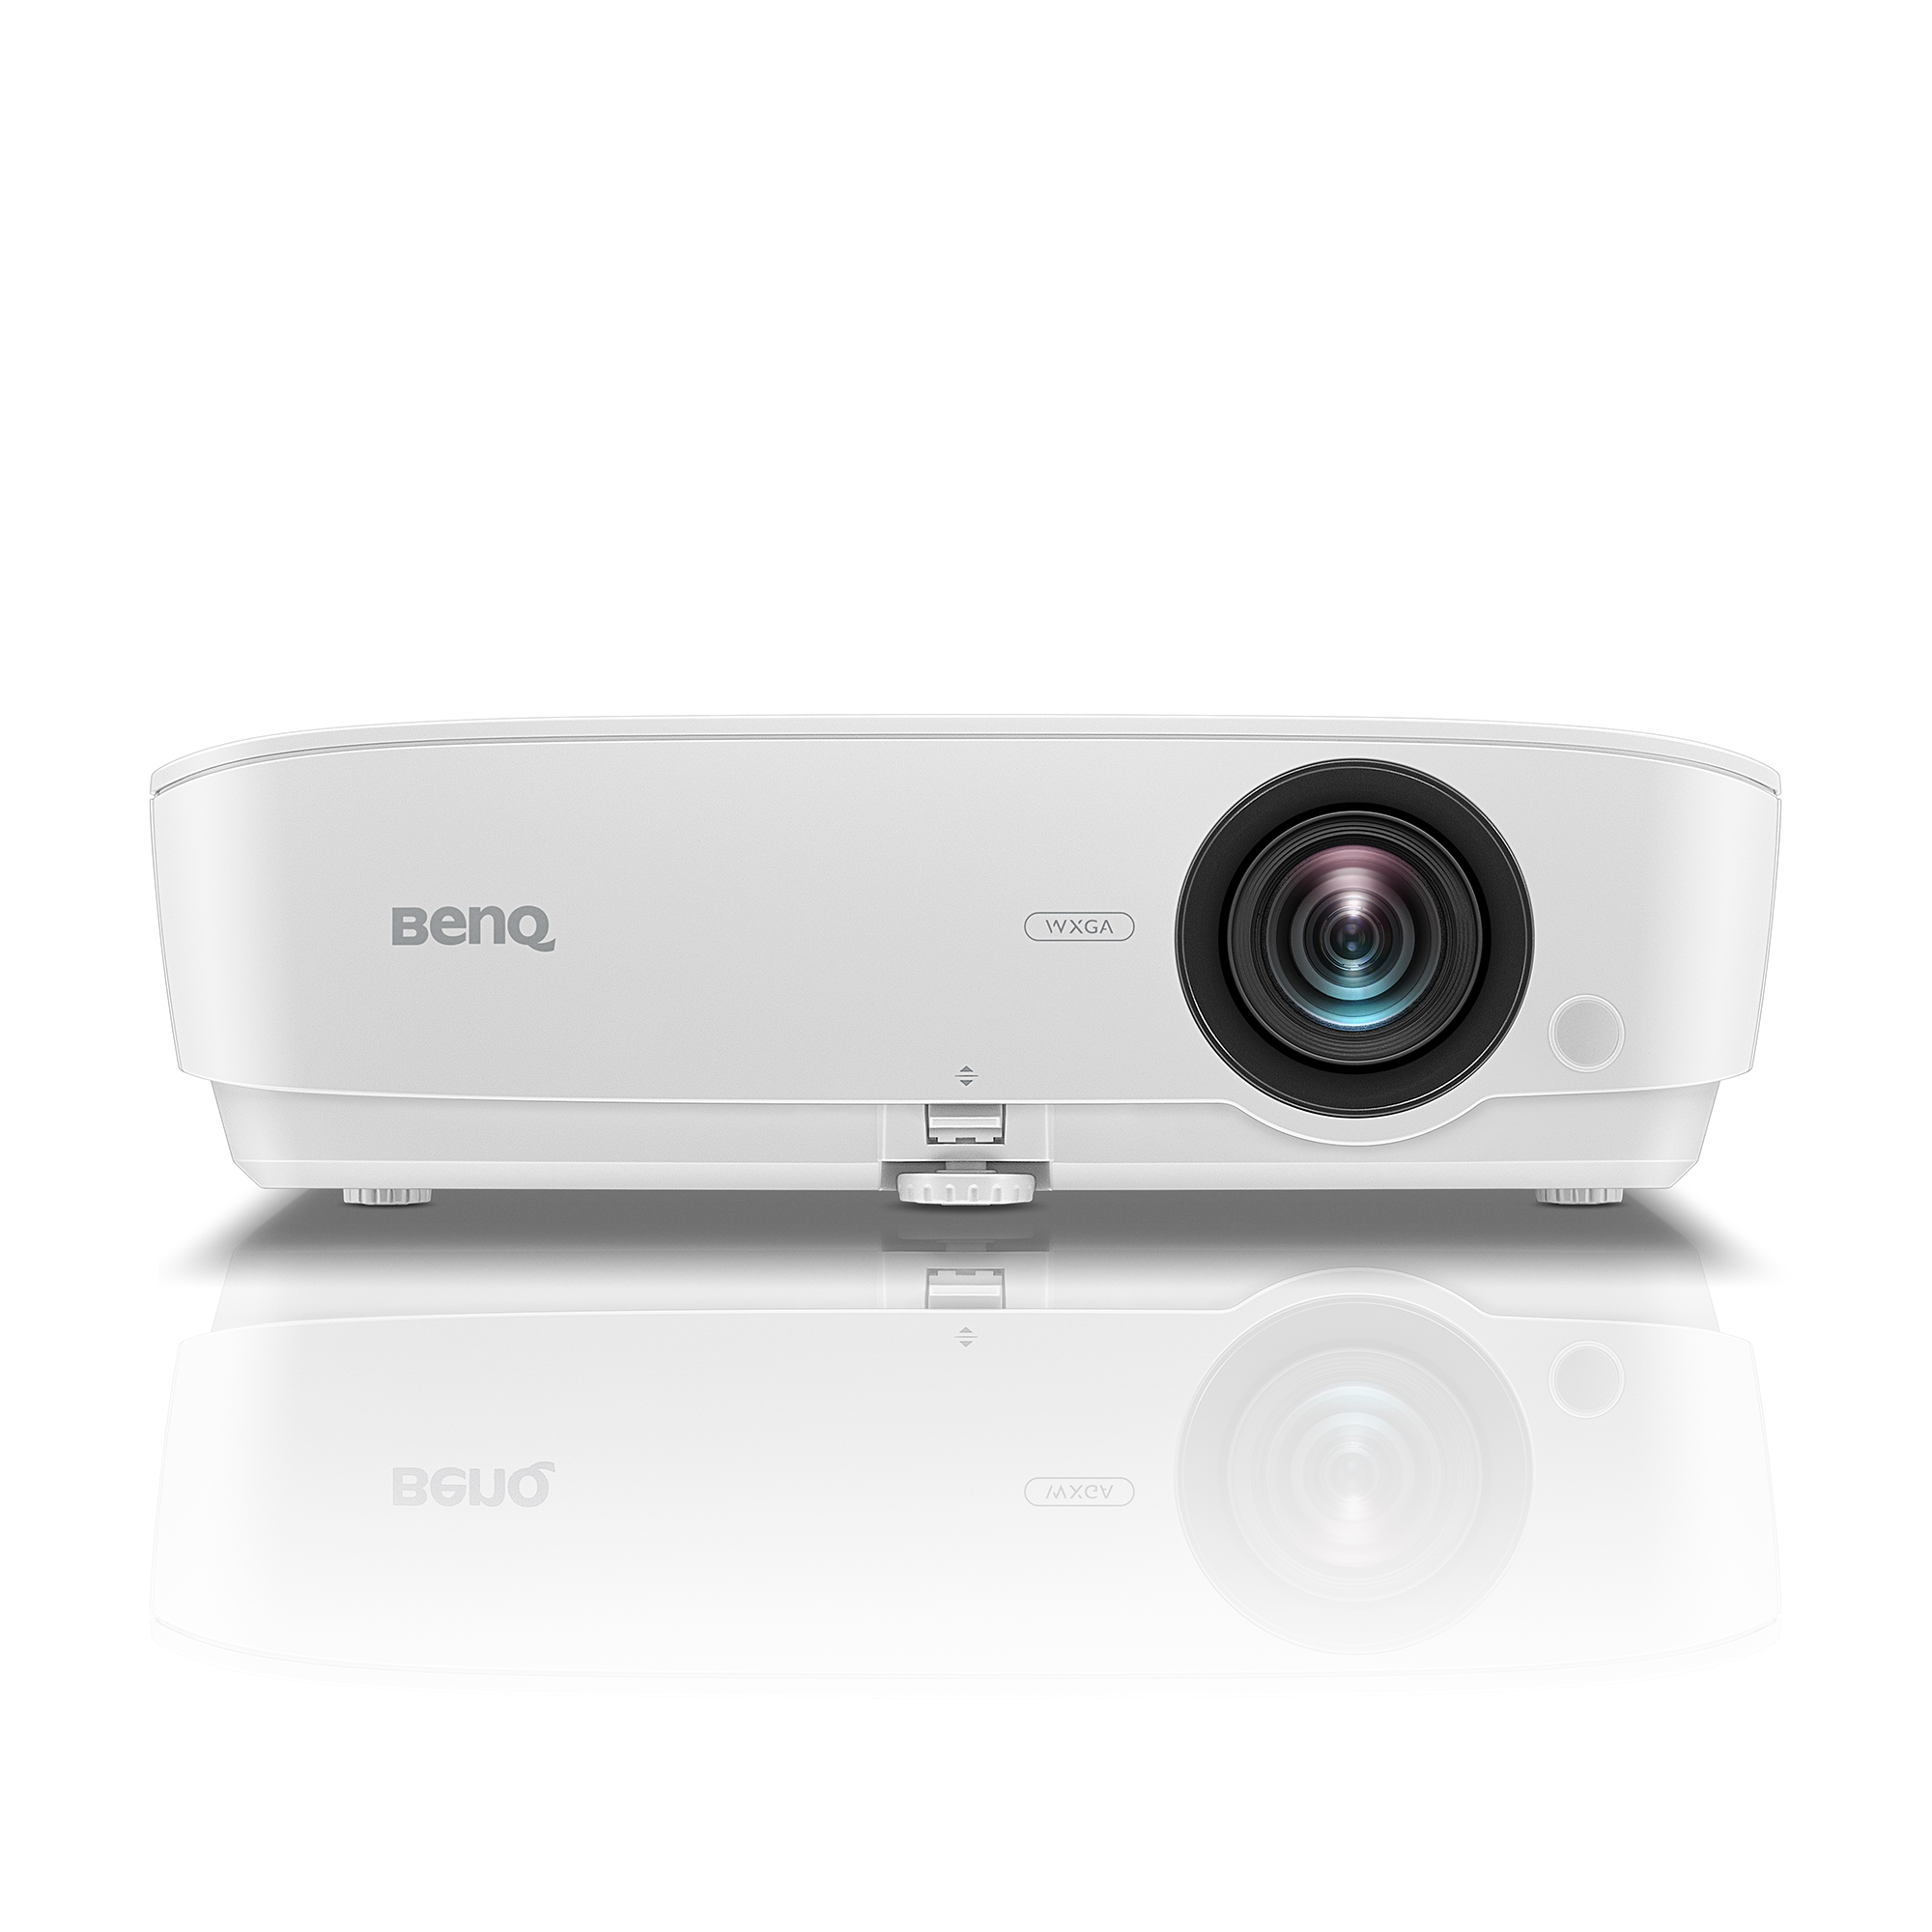 DLP Benq MW535 Projector 1280x800 Eco-Friendly WXGA Dual HDMI White Ref MW535